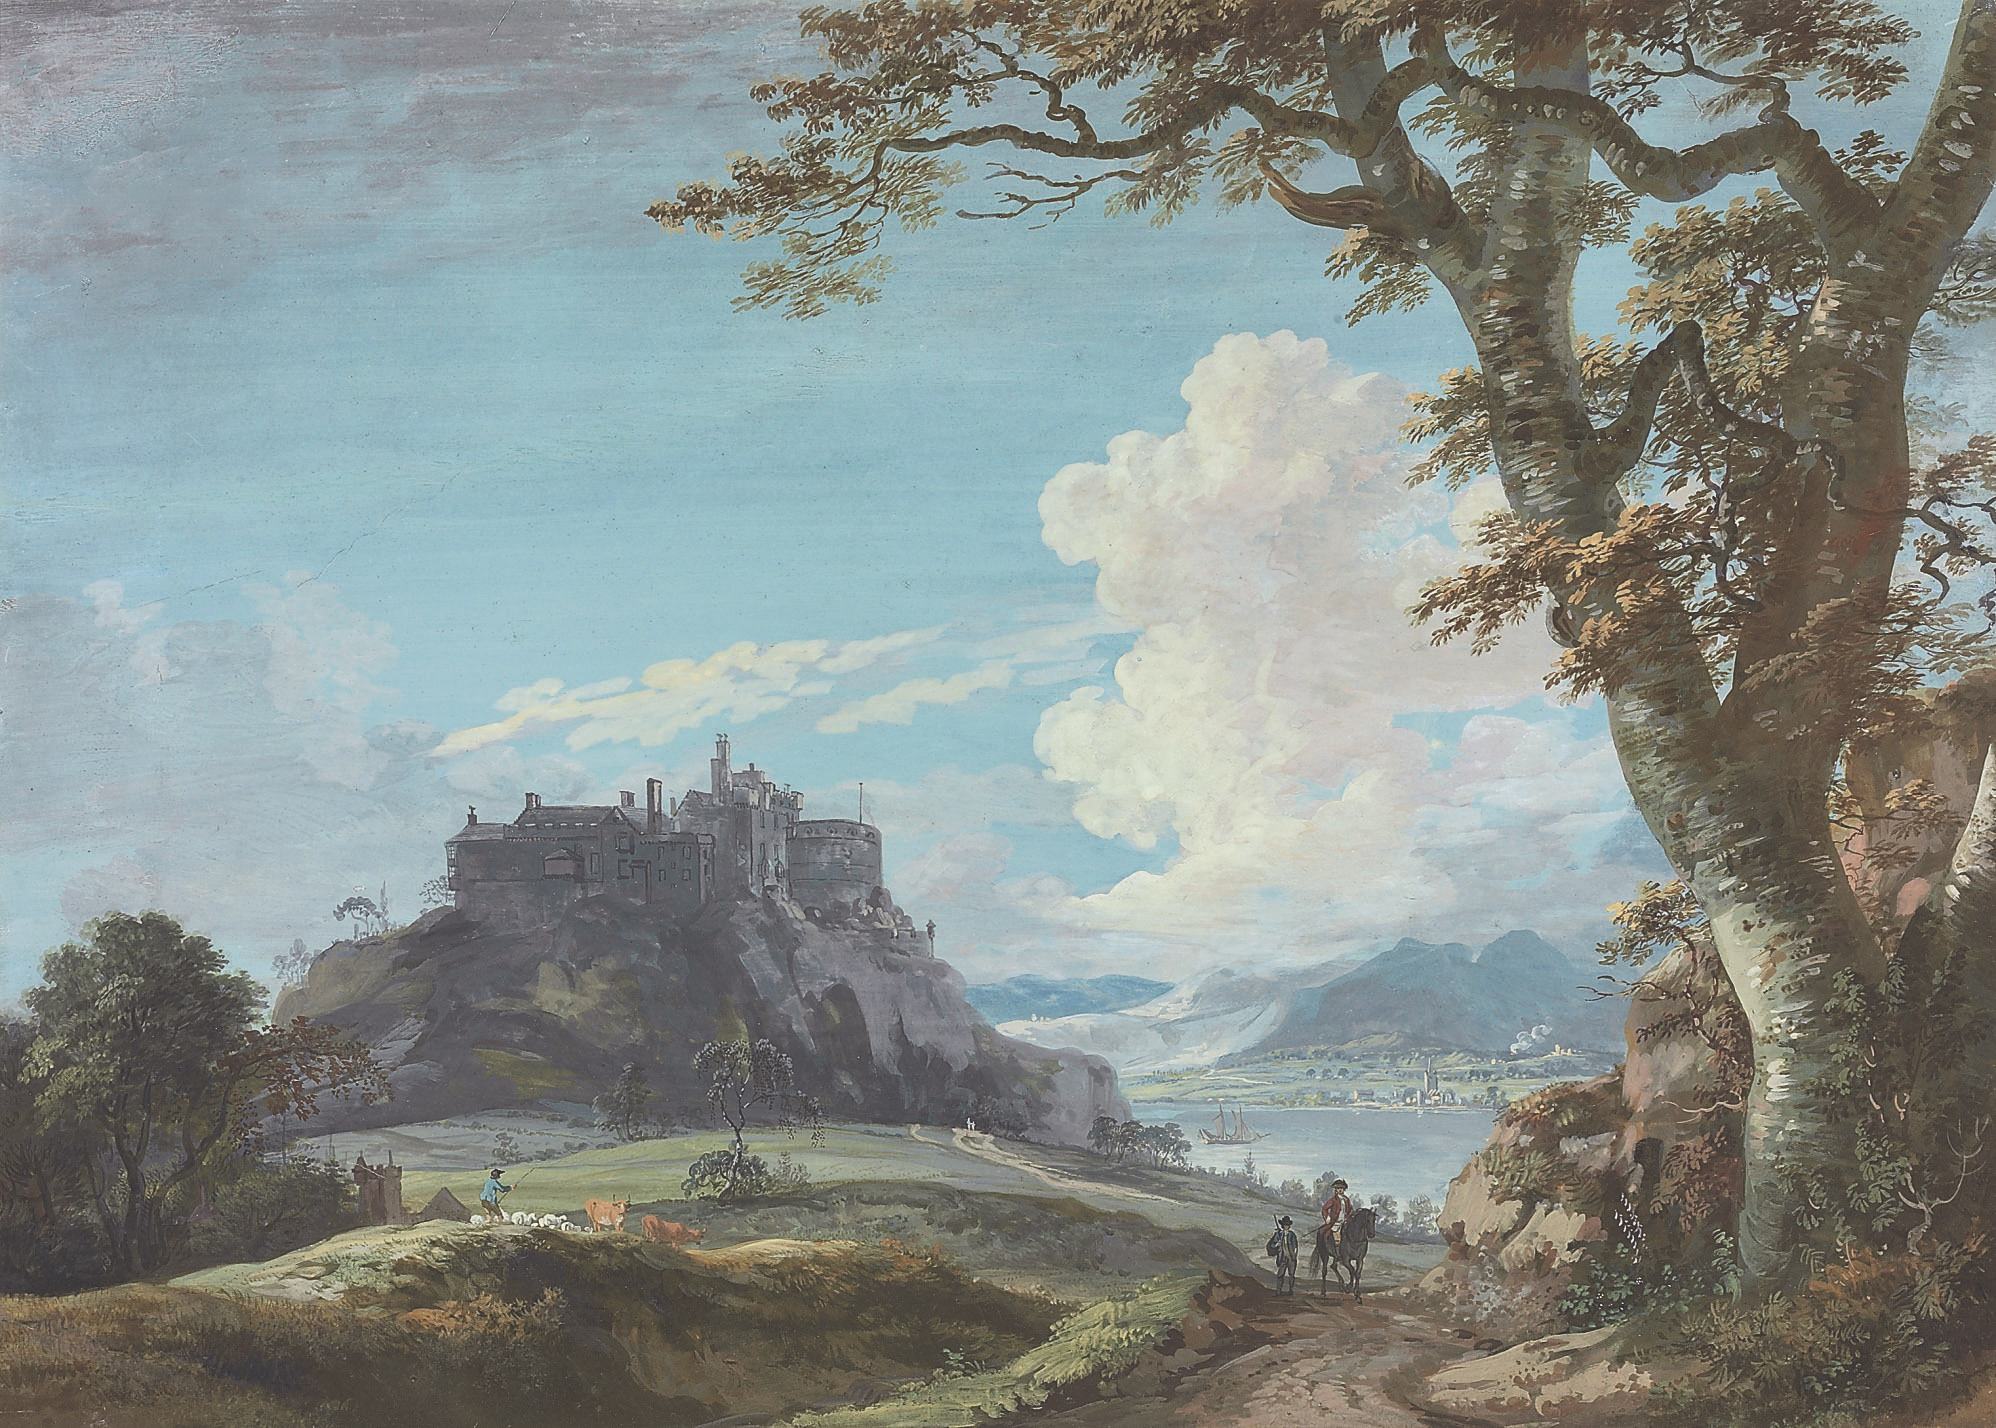 View of Stirling Castle, Scotland, with a drover and a traveller on horseback in the foreground